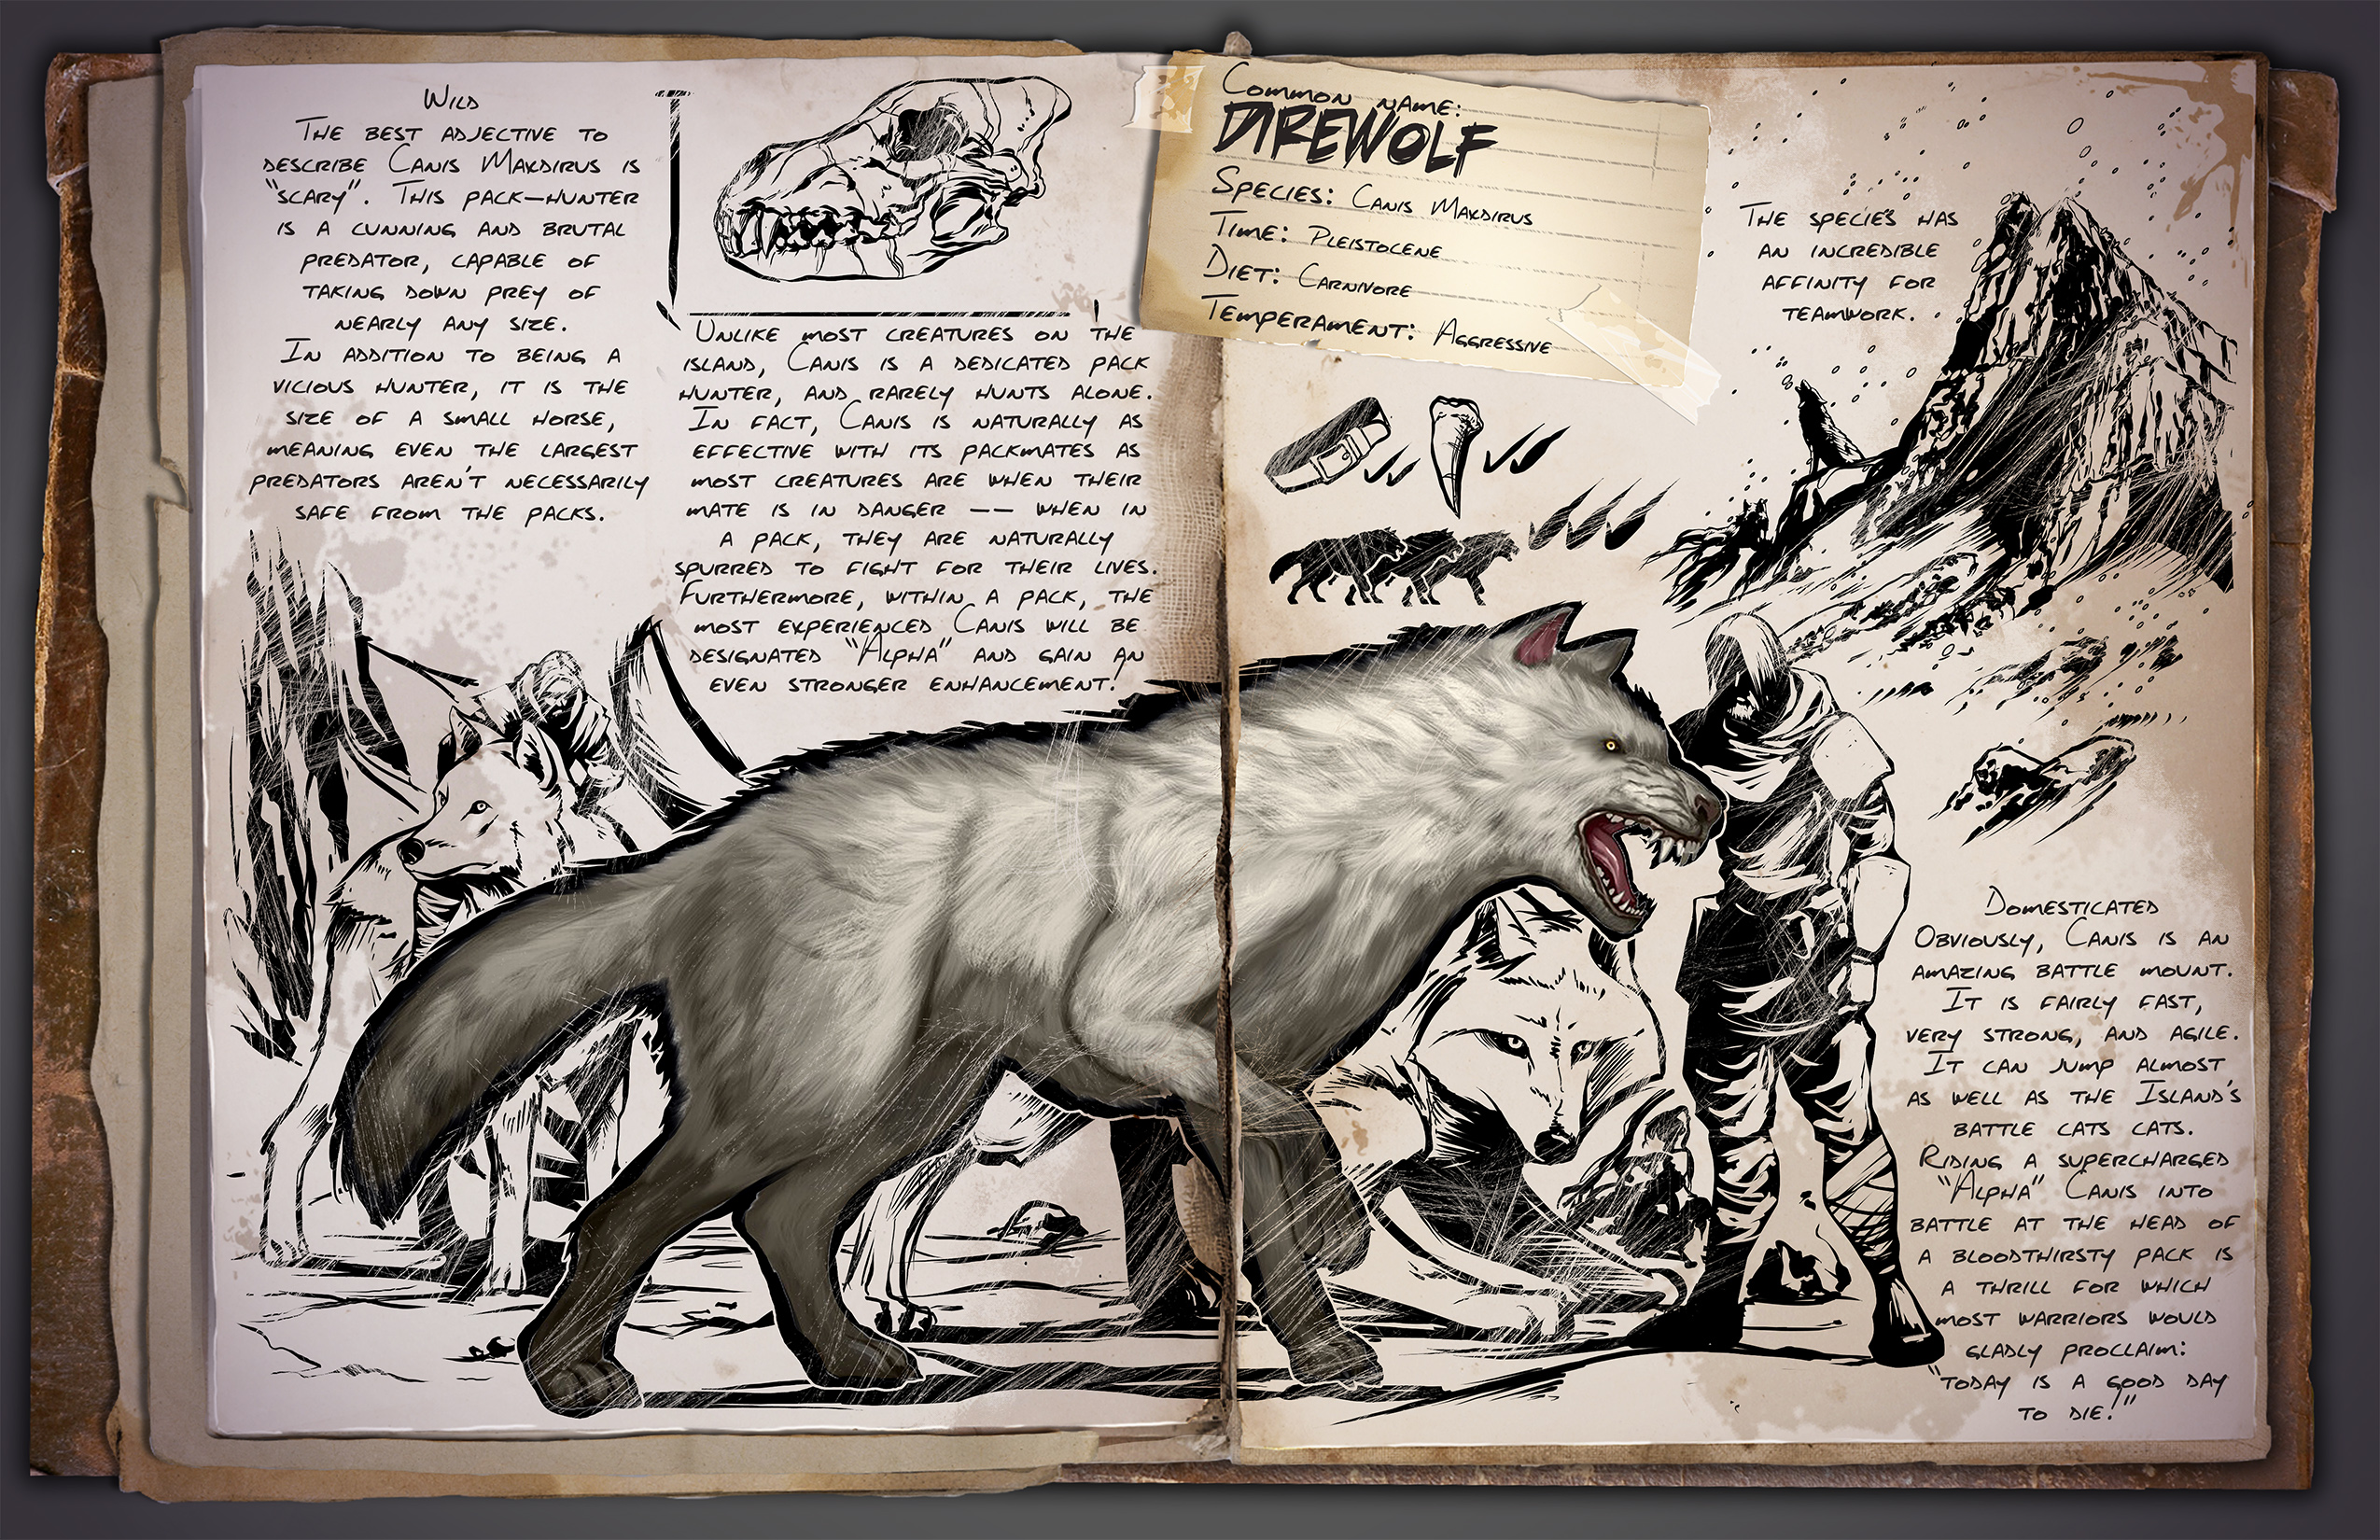 Ark survival evolved hype pgina 49 mediavida ark survival evolved hype malvernweather Gallery